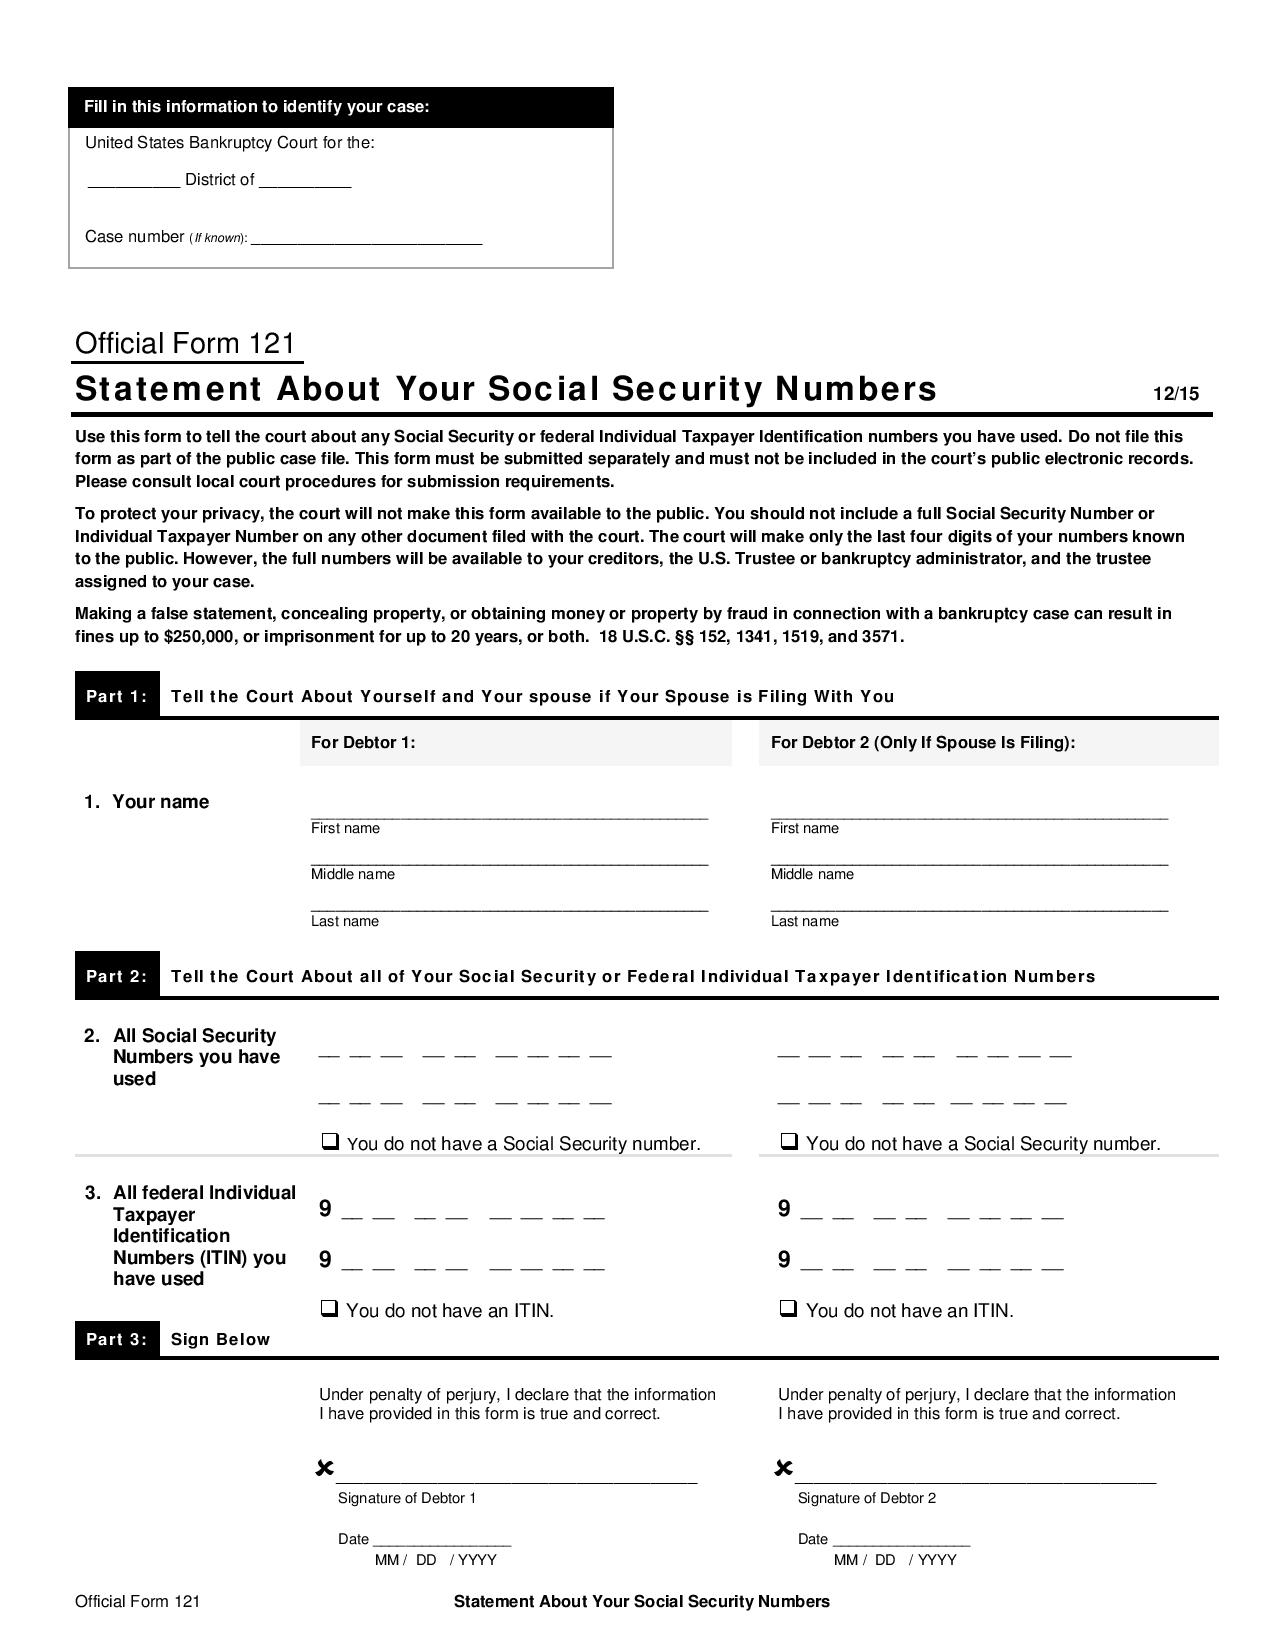 Free Official Form 121 Statement About Your Social